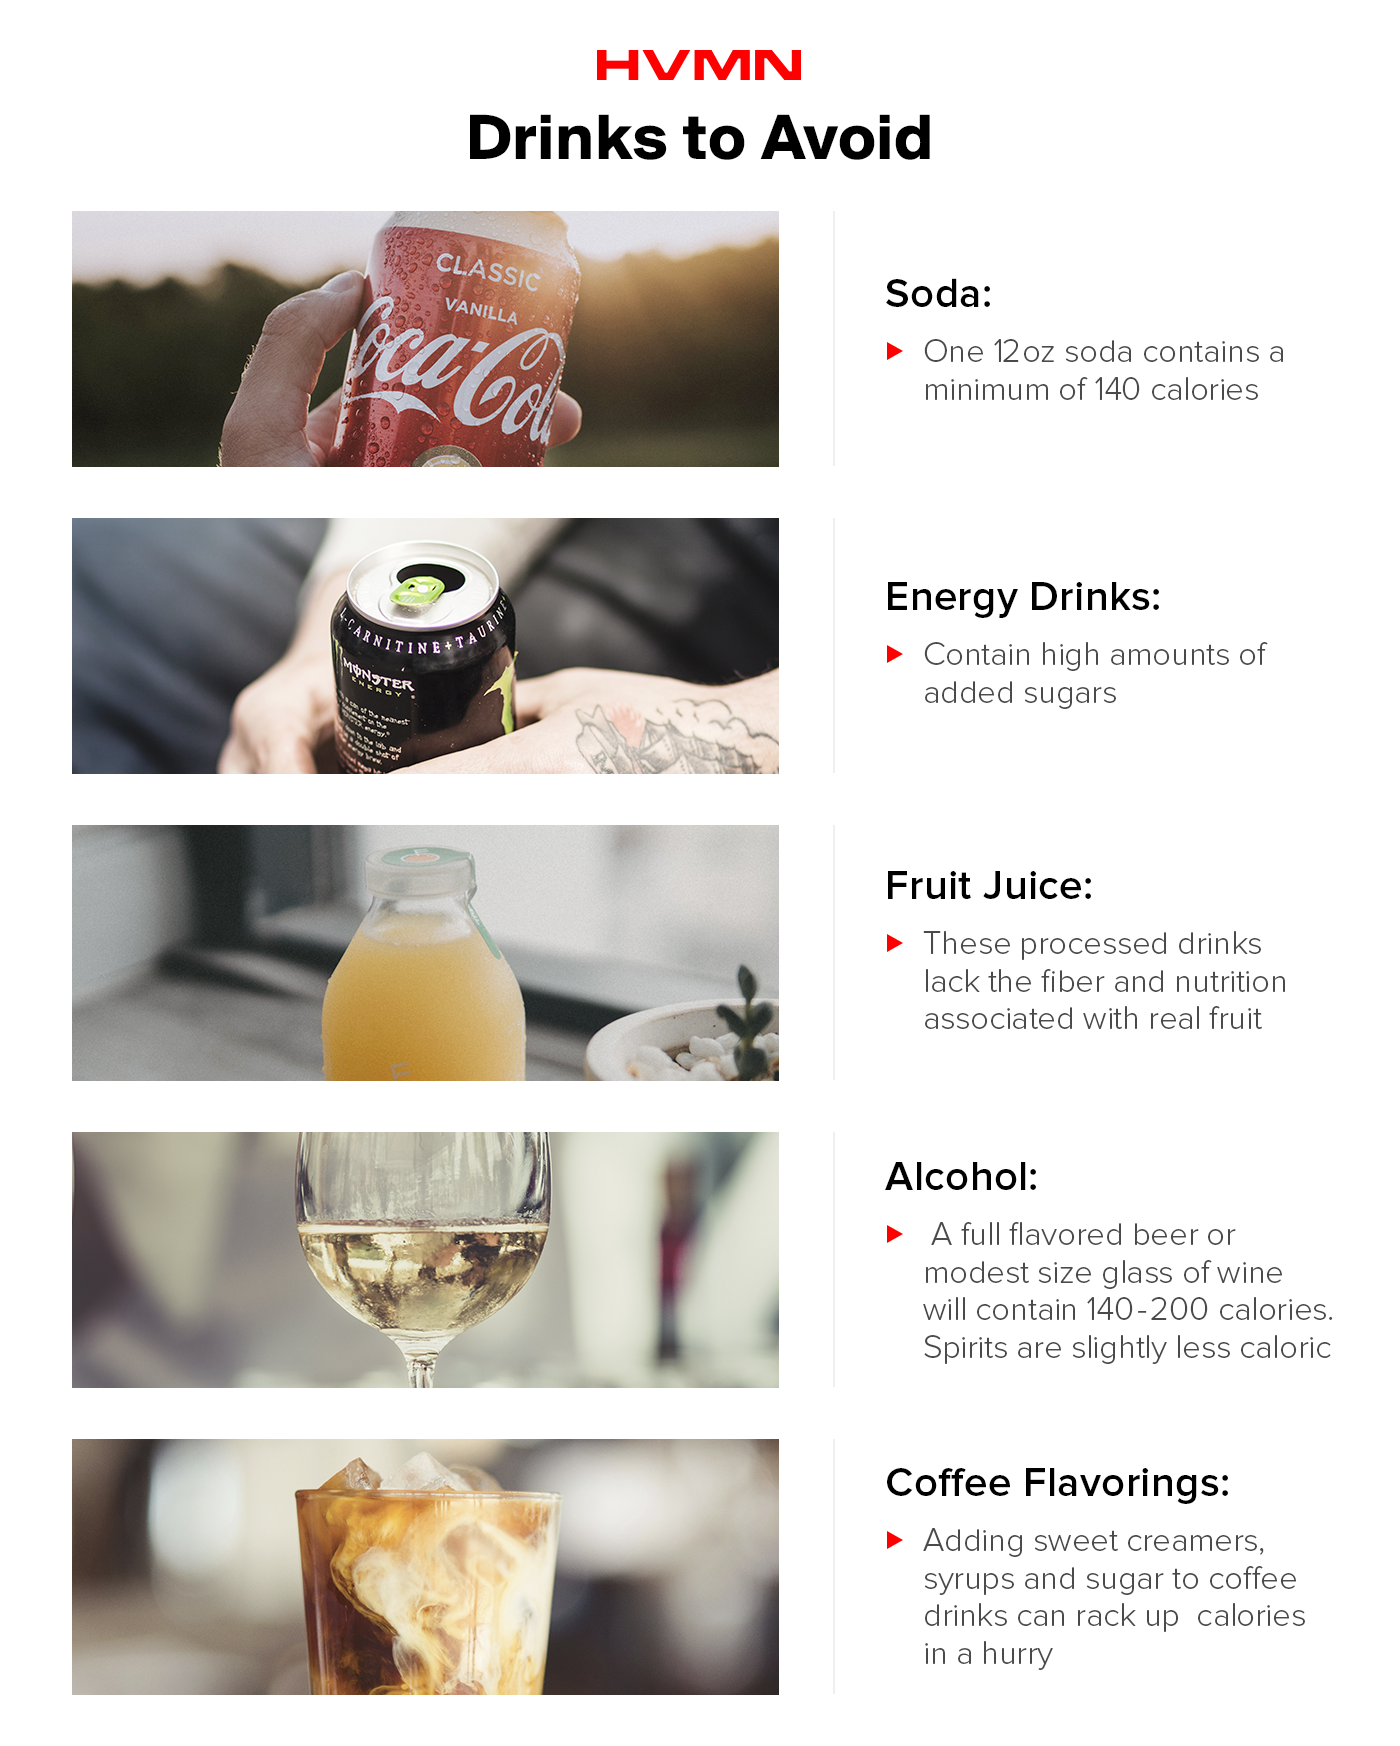 Images of soda, energy drinks, juices, wine and sugary coffee drinks, all beverages you should avoid on keto